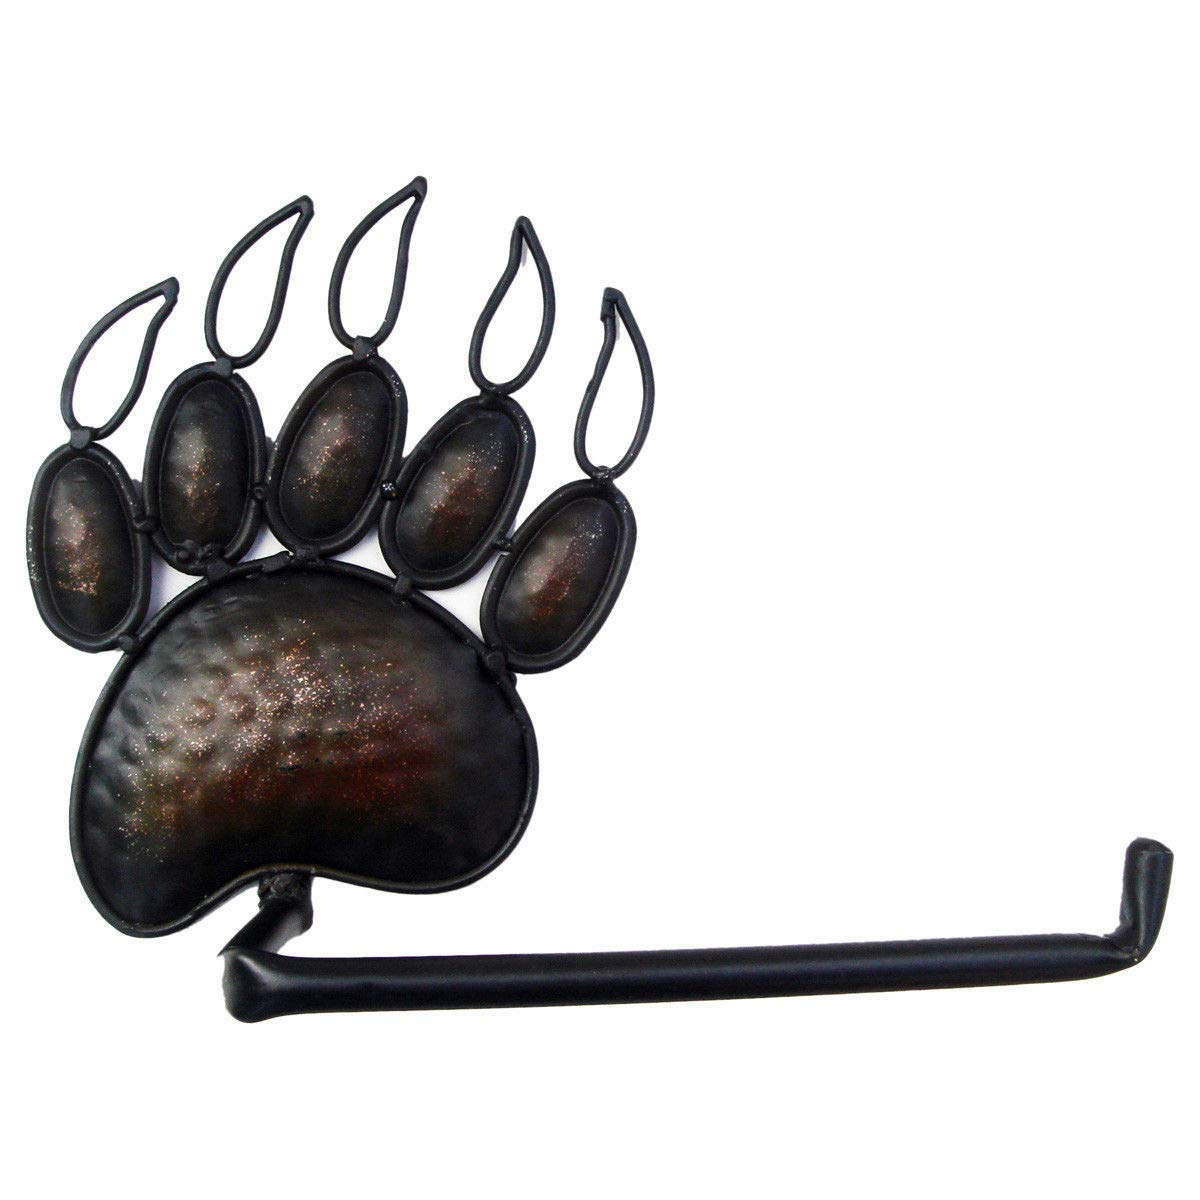 ROX Luxury House Black Bear Paw Toilet Paper TP Holder Cute Grizzly Claw Lodge Cabin Rustic Decor